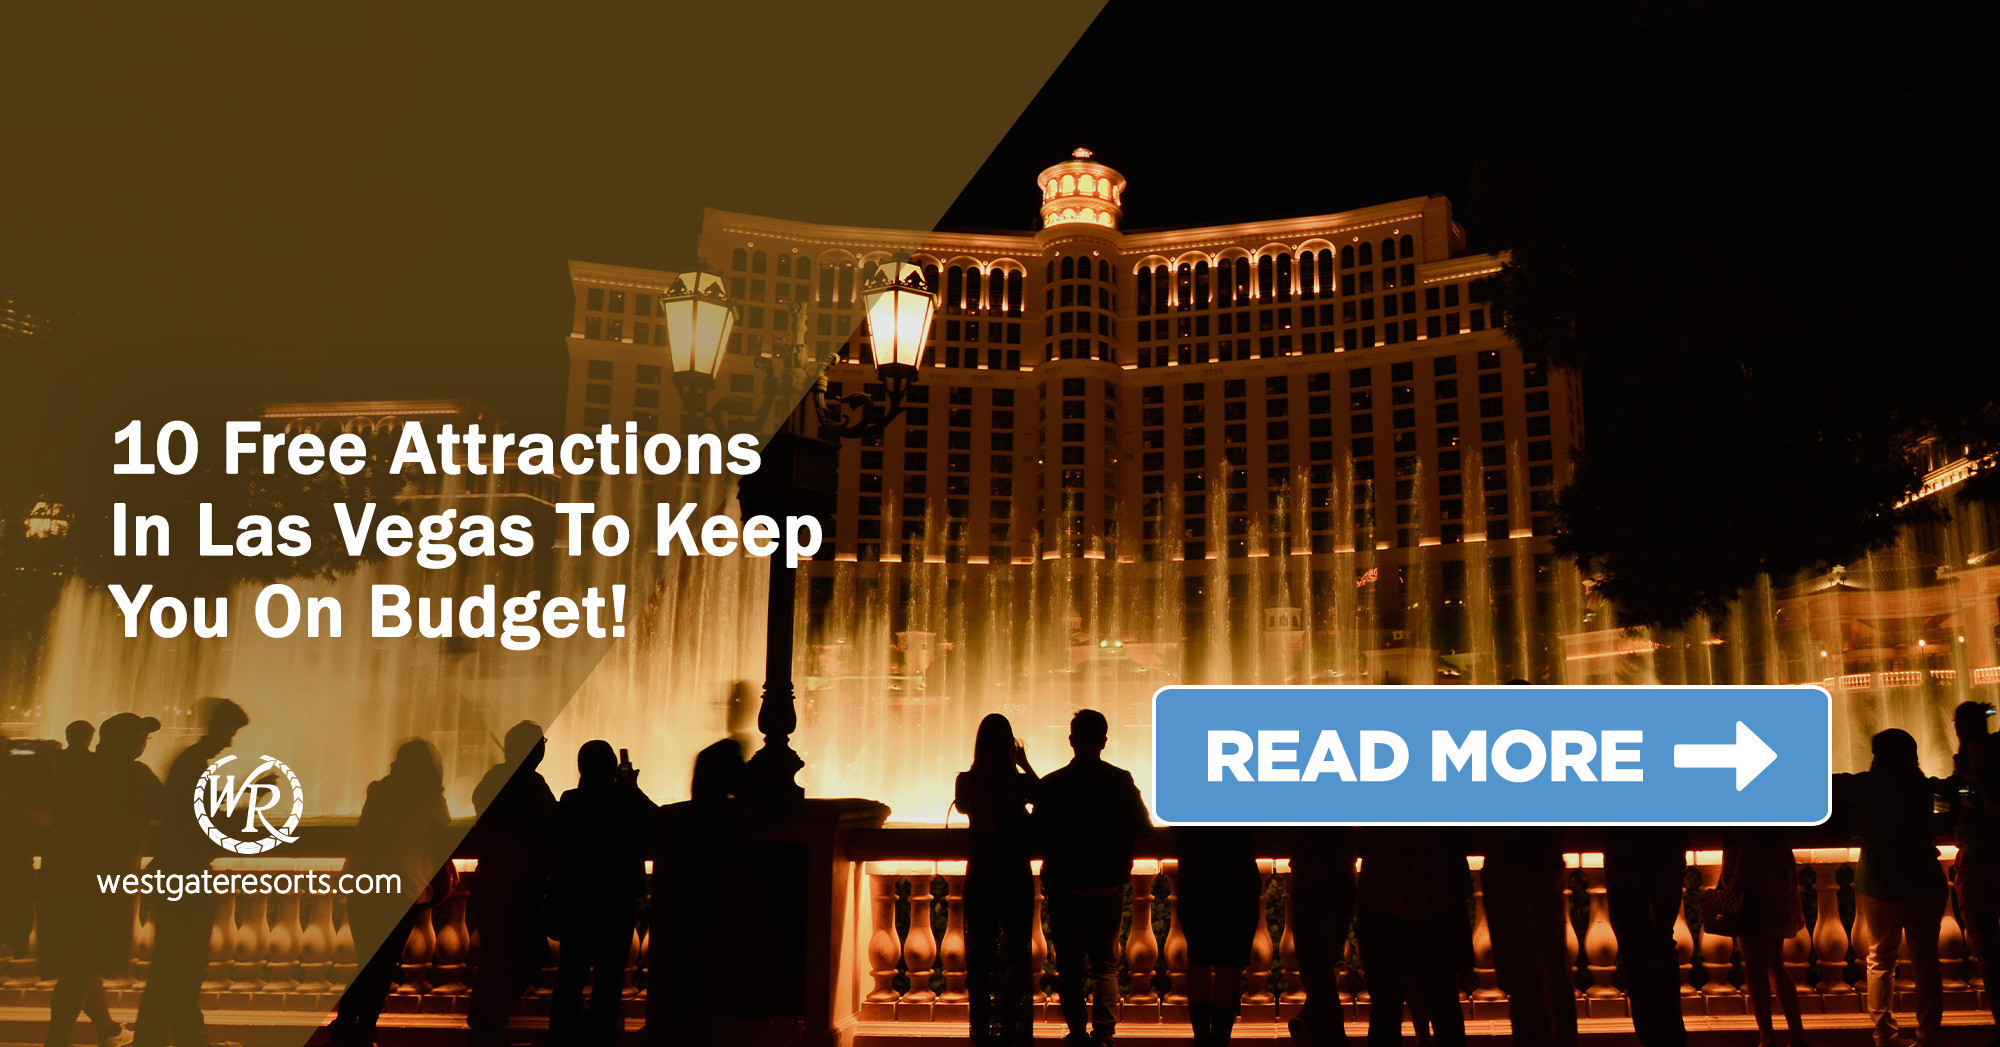 10 Free Attractions In Las Vegas To Keep You On Budget!